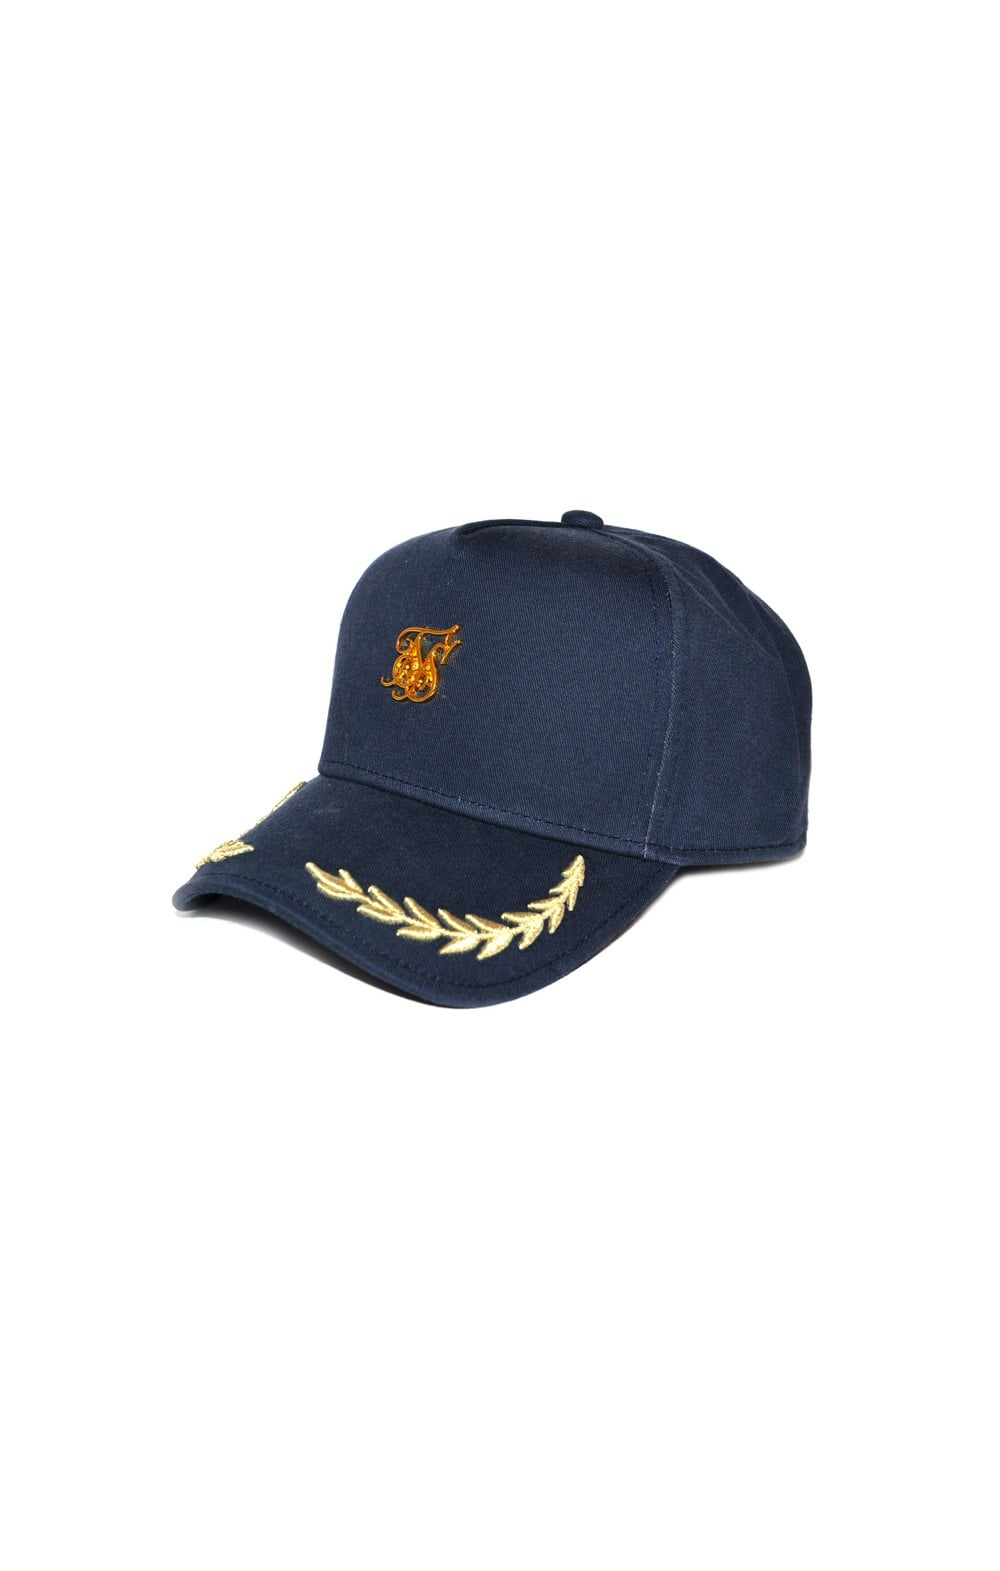 Load image into Gallery viewer, SikSilk Washed Cotton Trucker - Navy